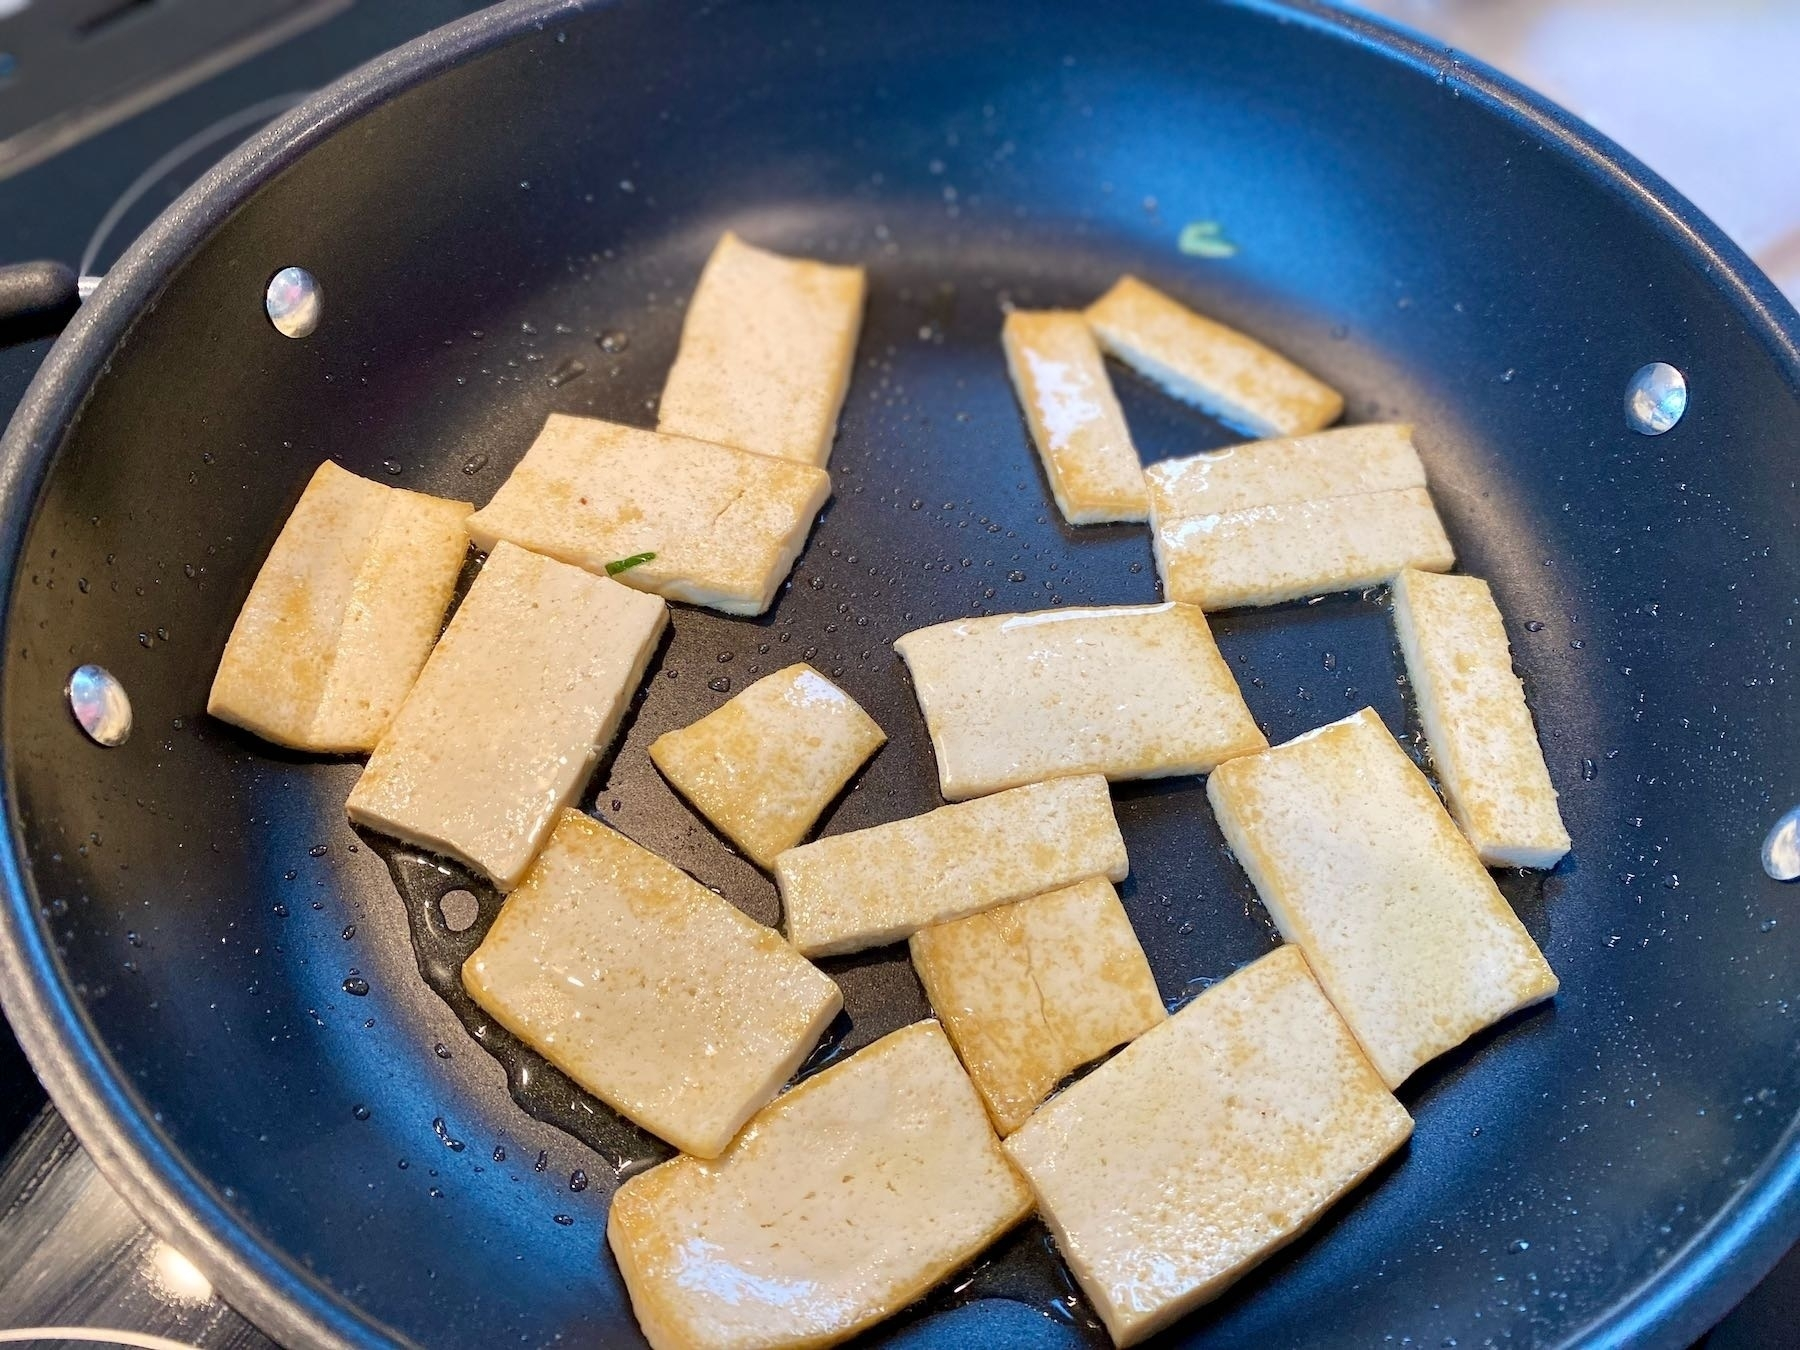 Tofu coooking in a pan.